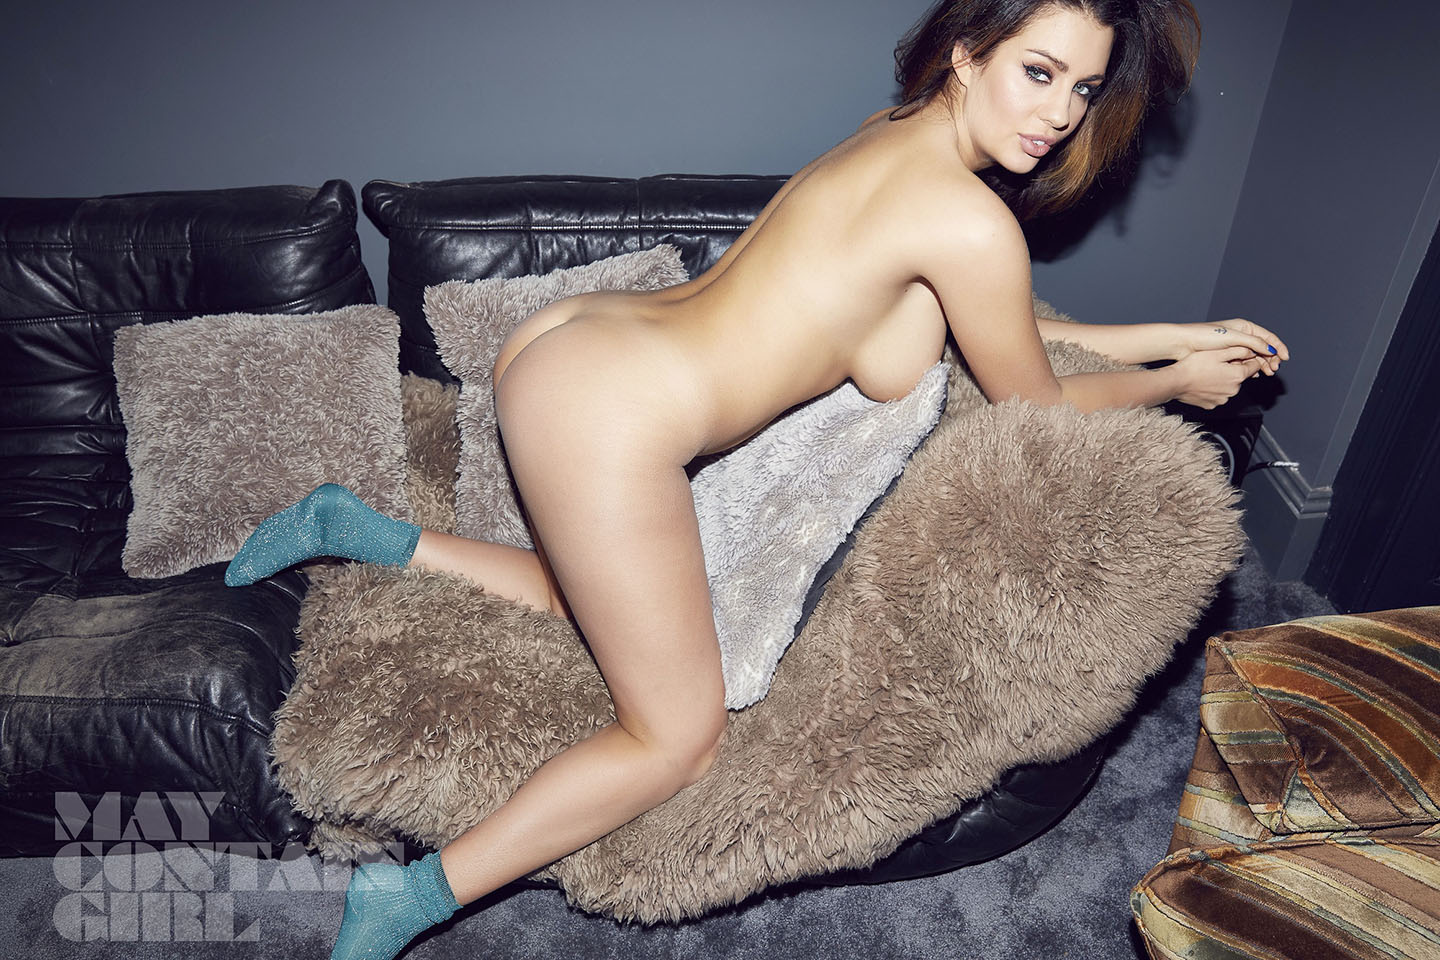 Holly Peers Nude Photo Shoot The Fappening